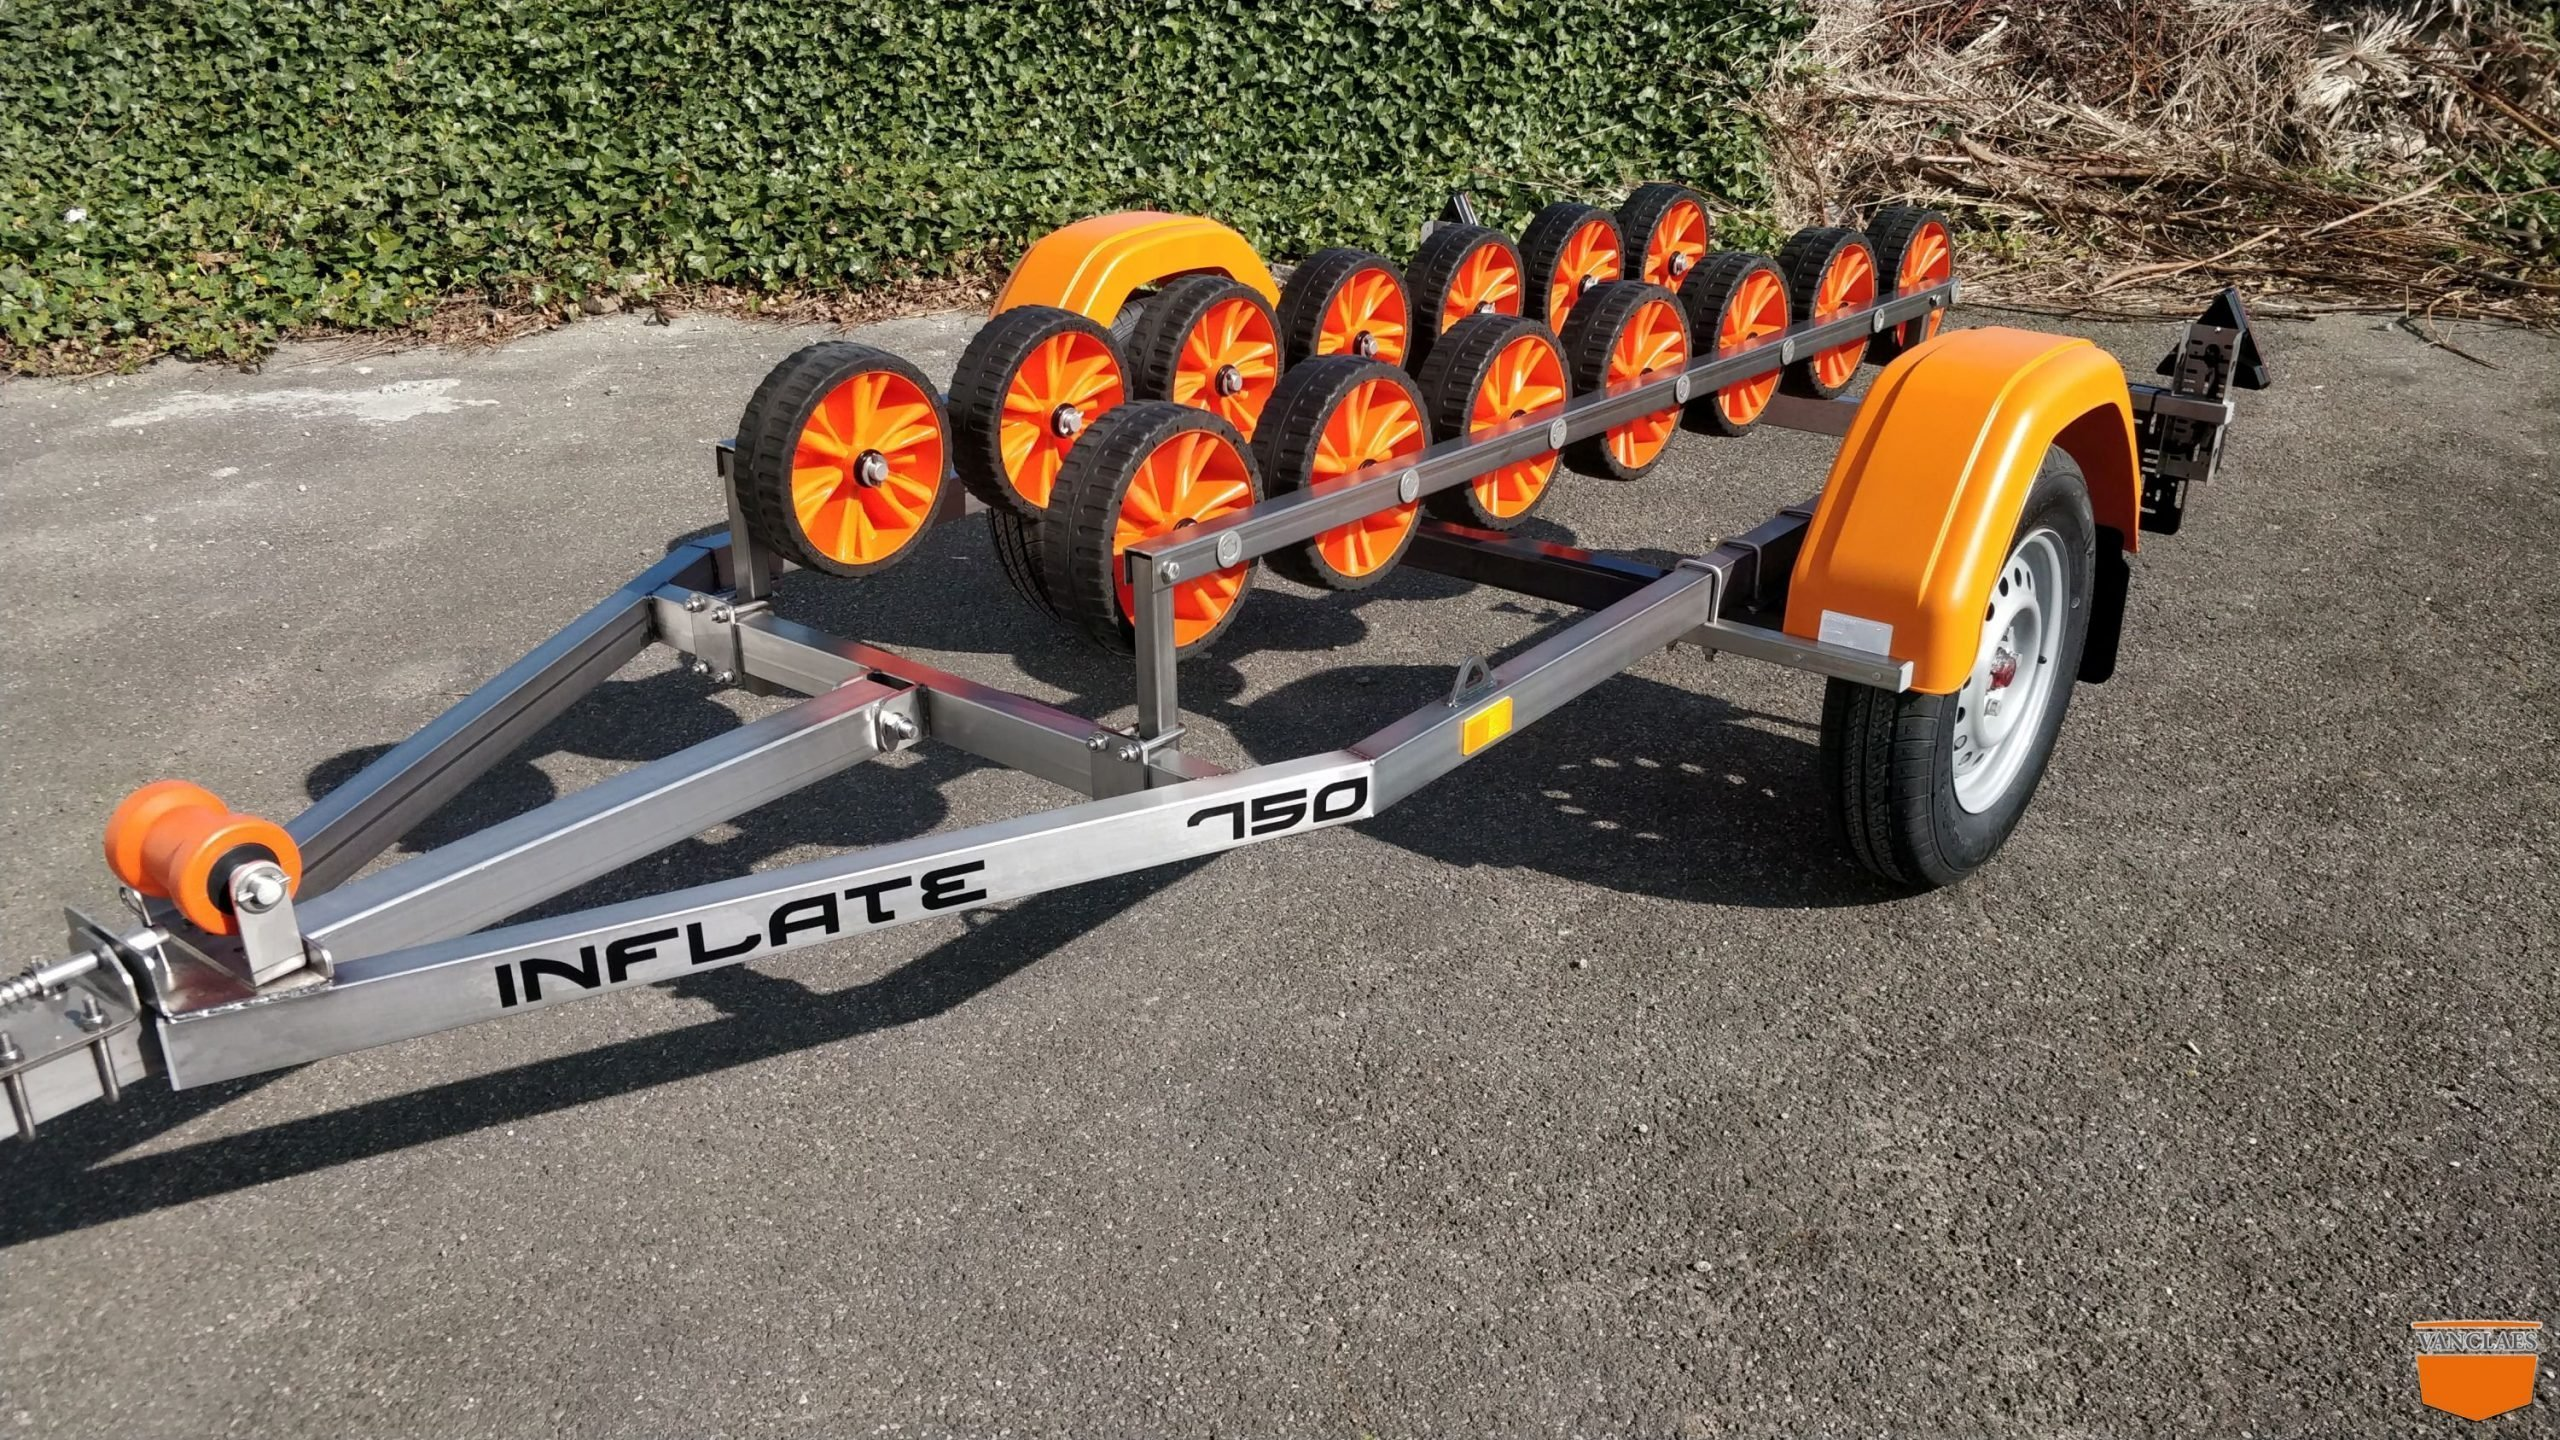 Inflate 750- 13'' - 450 ongeremd 1 as 6